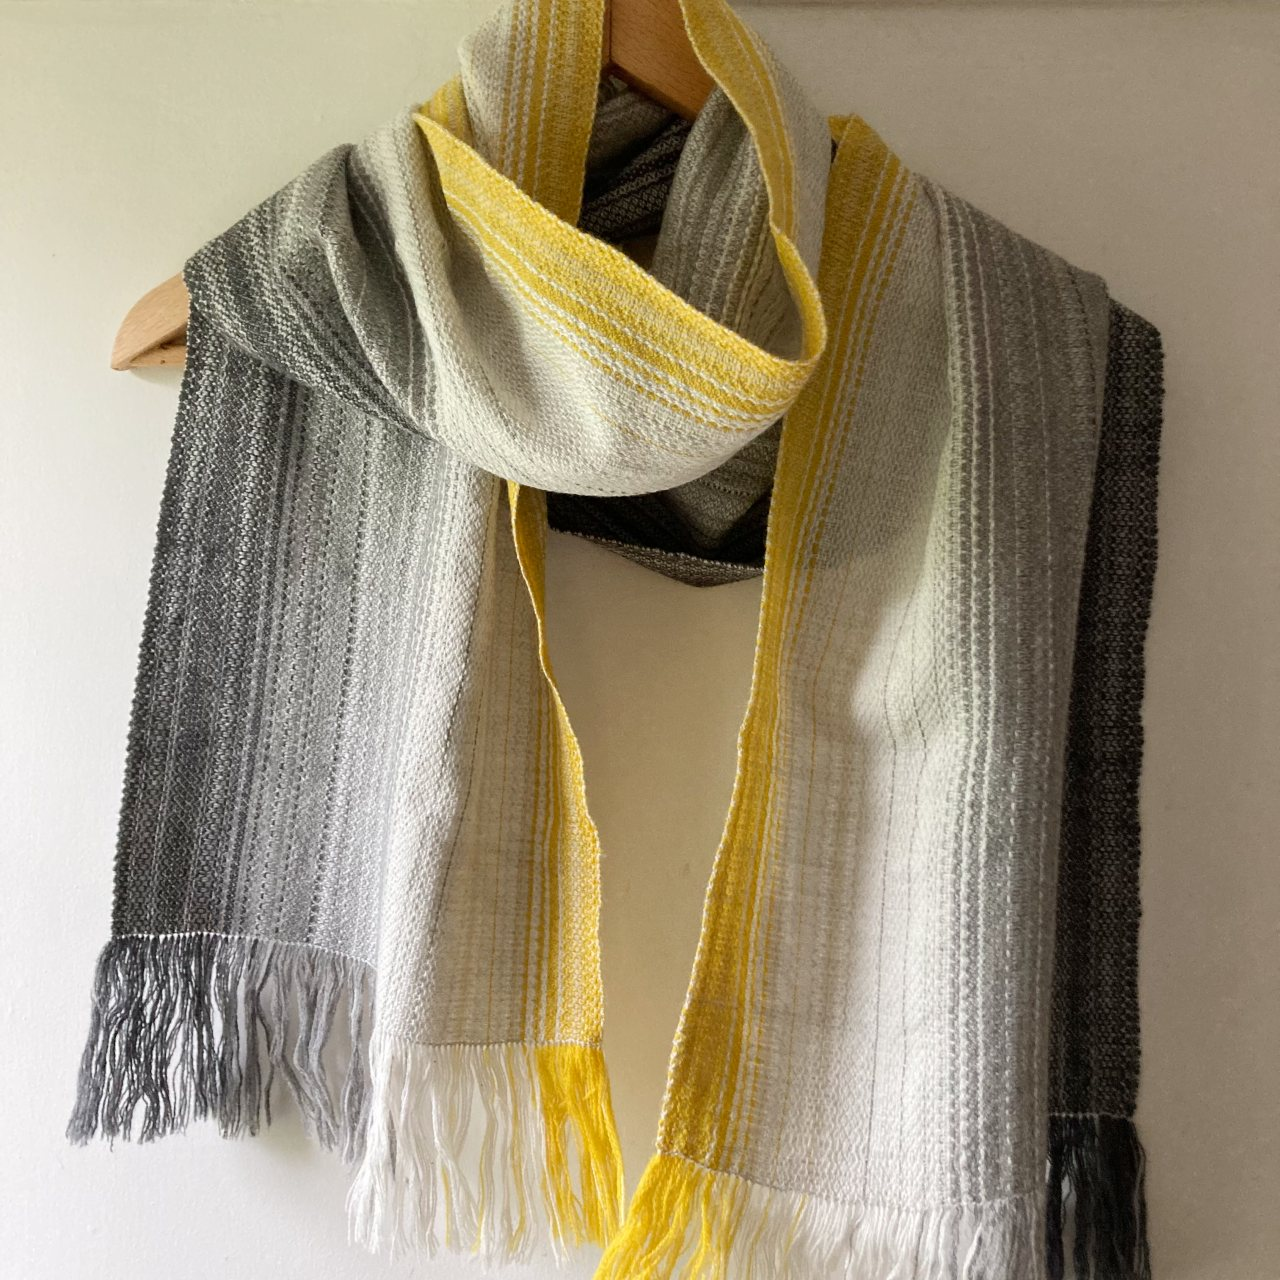 Peak Collection Scarf in yellow and grey